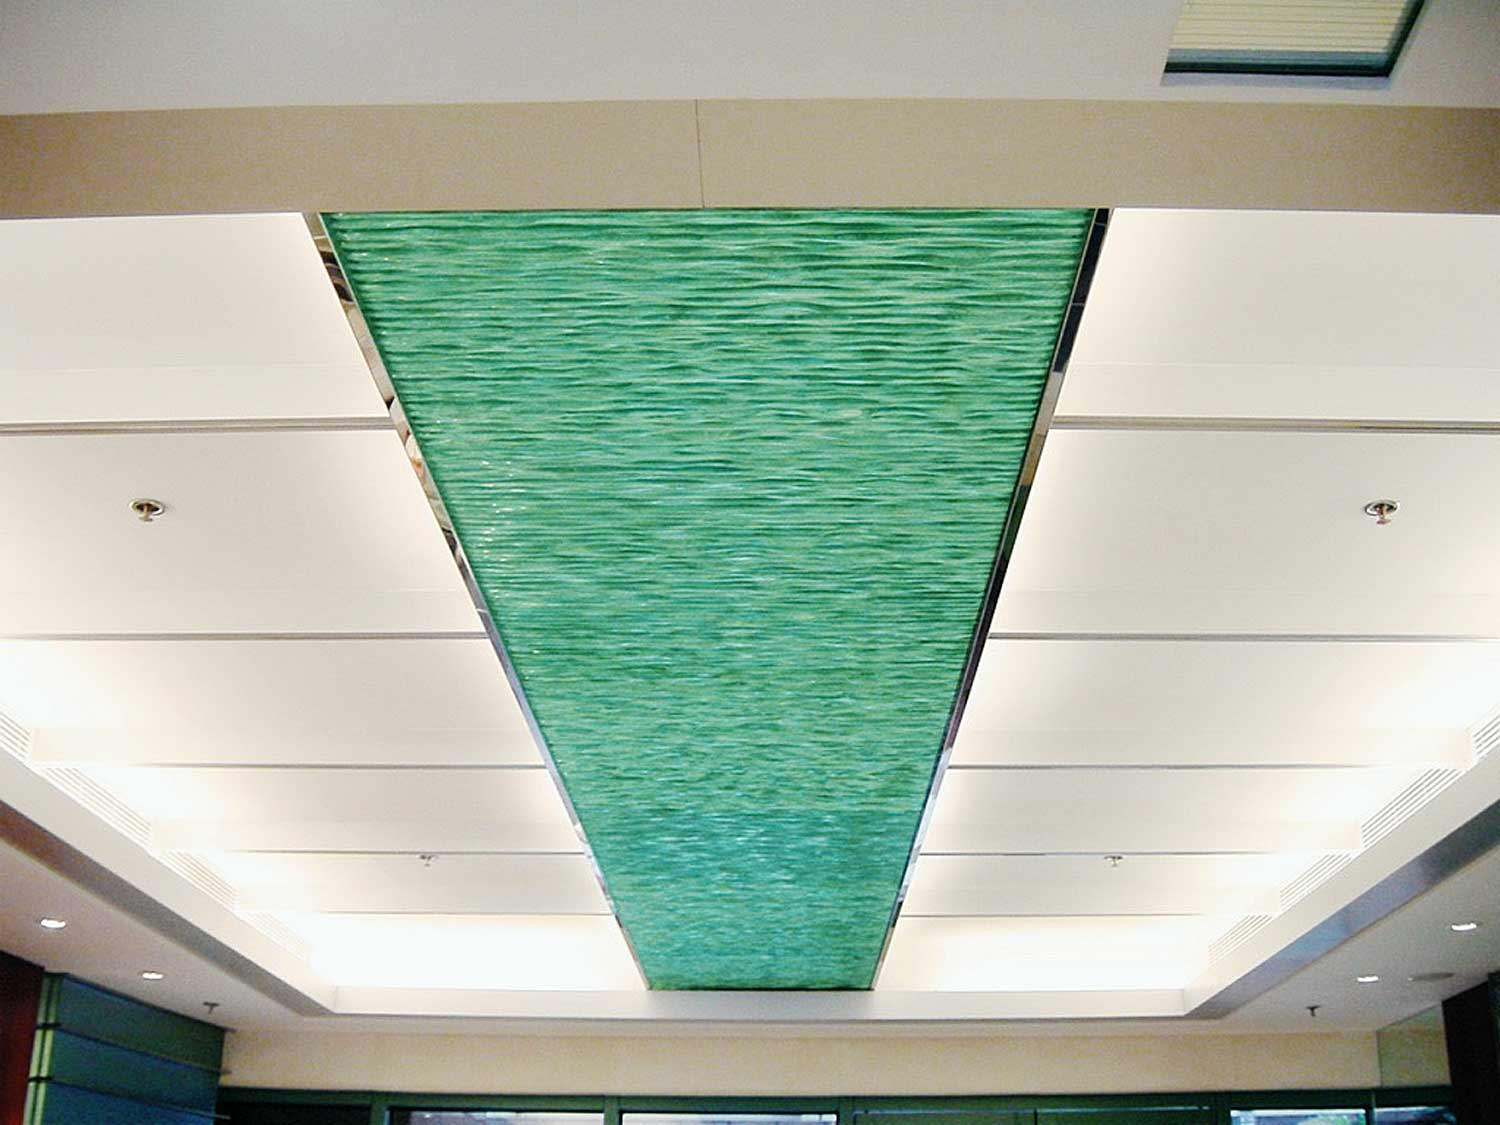 GlassStax ceiling